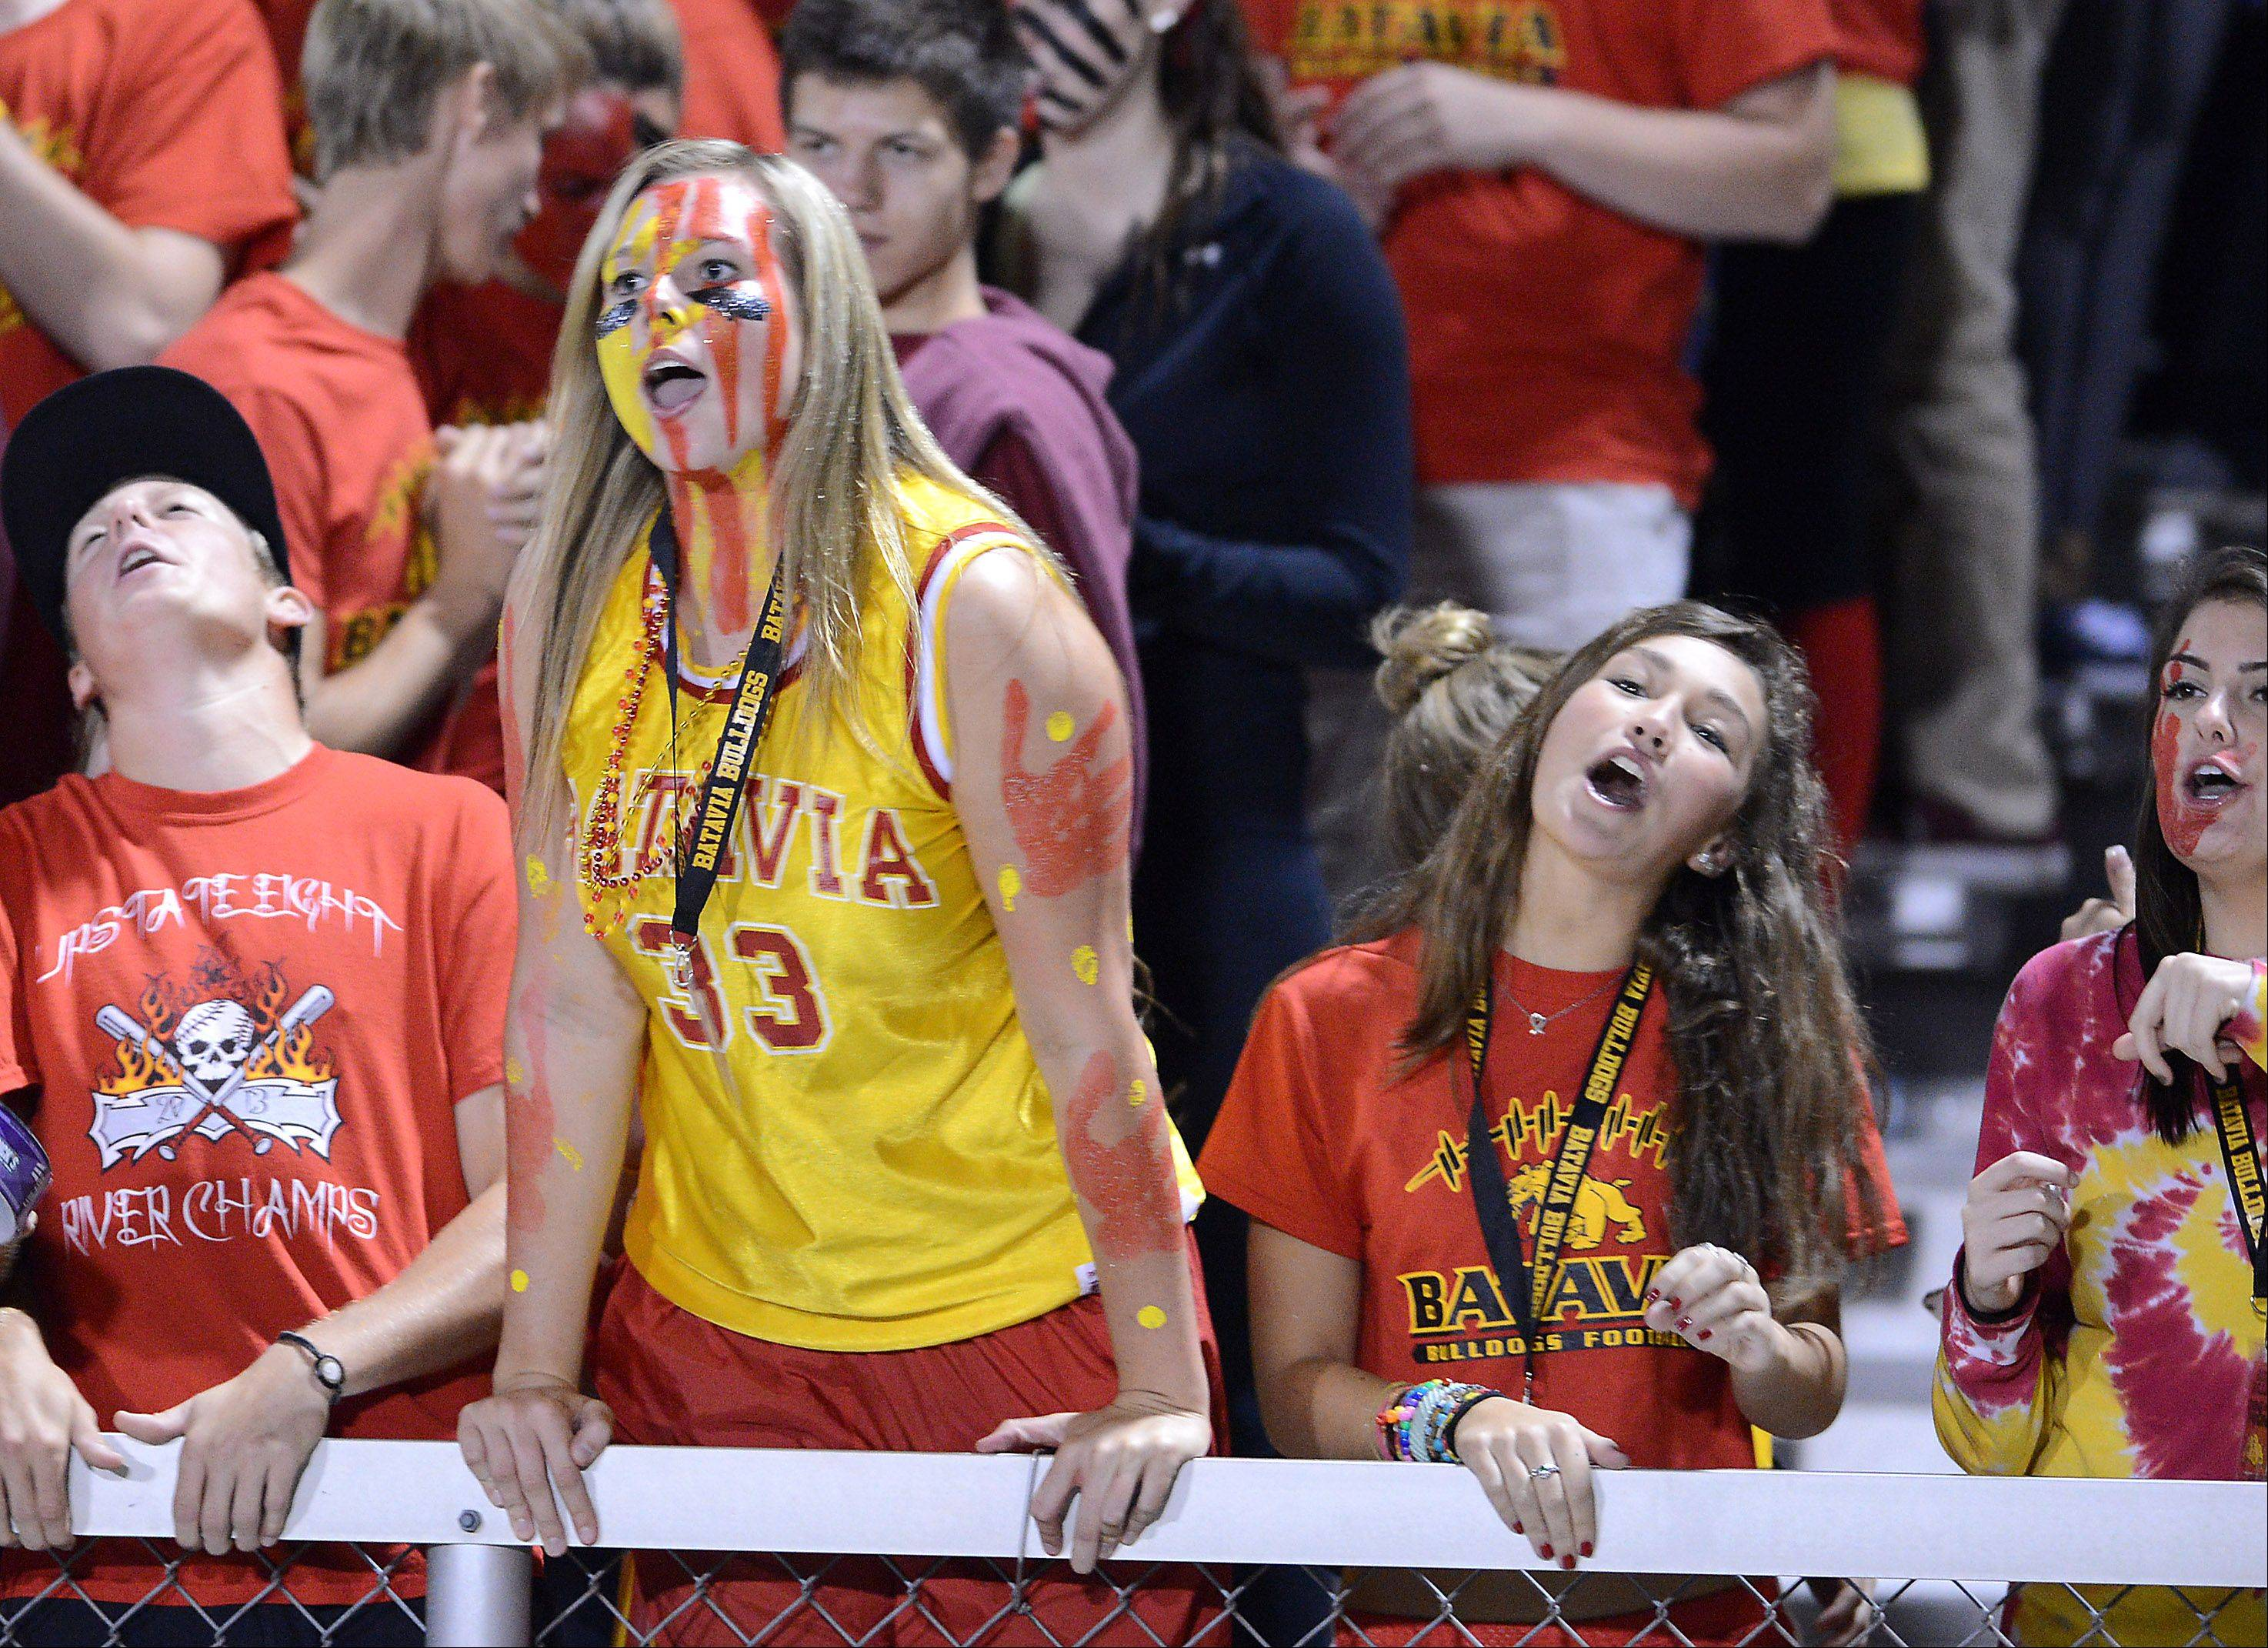 Batavia fans, including senior Erin Bayram, in yellow, cheer on the Bulldogs against St. Charles North.